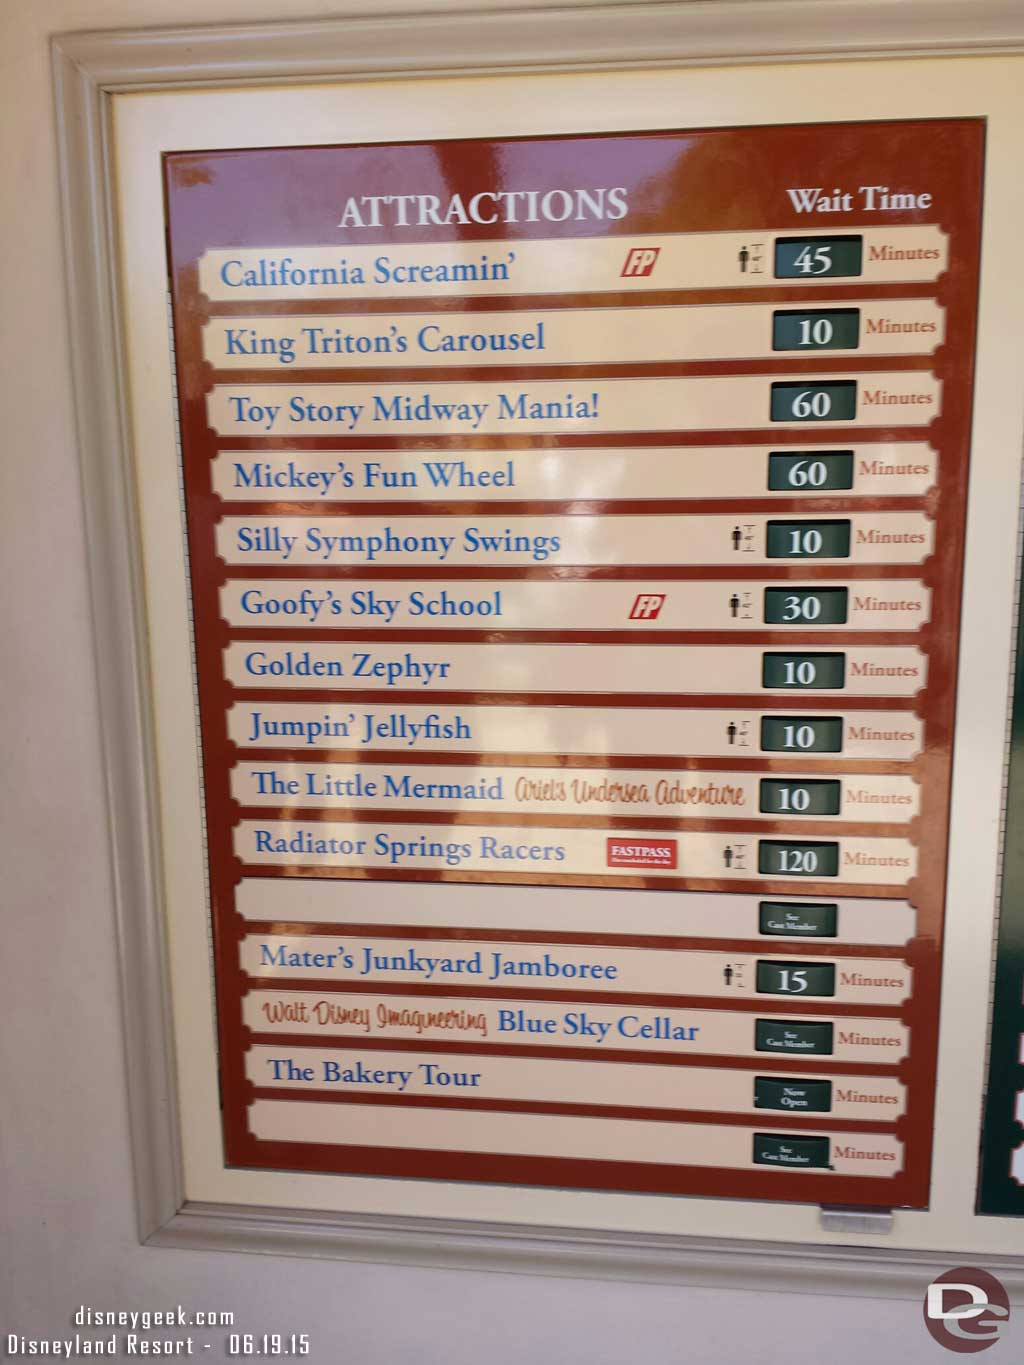 Disney California Adventure waits as of 1:30pm